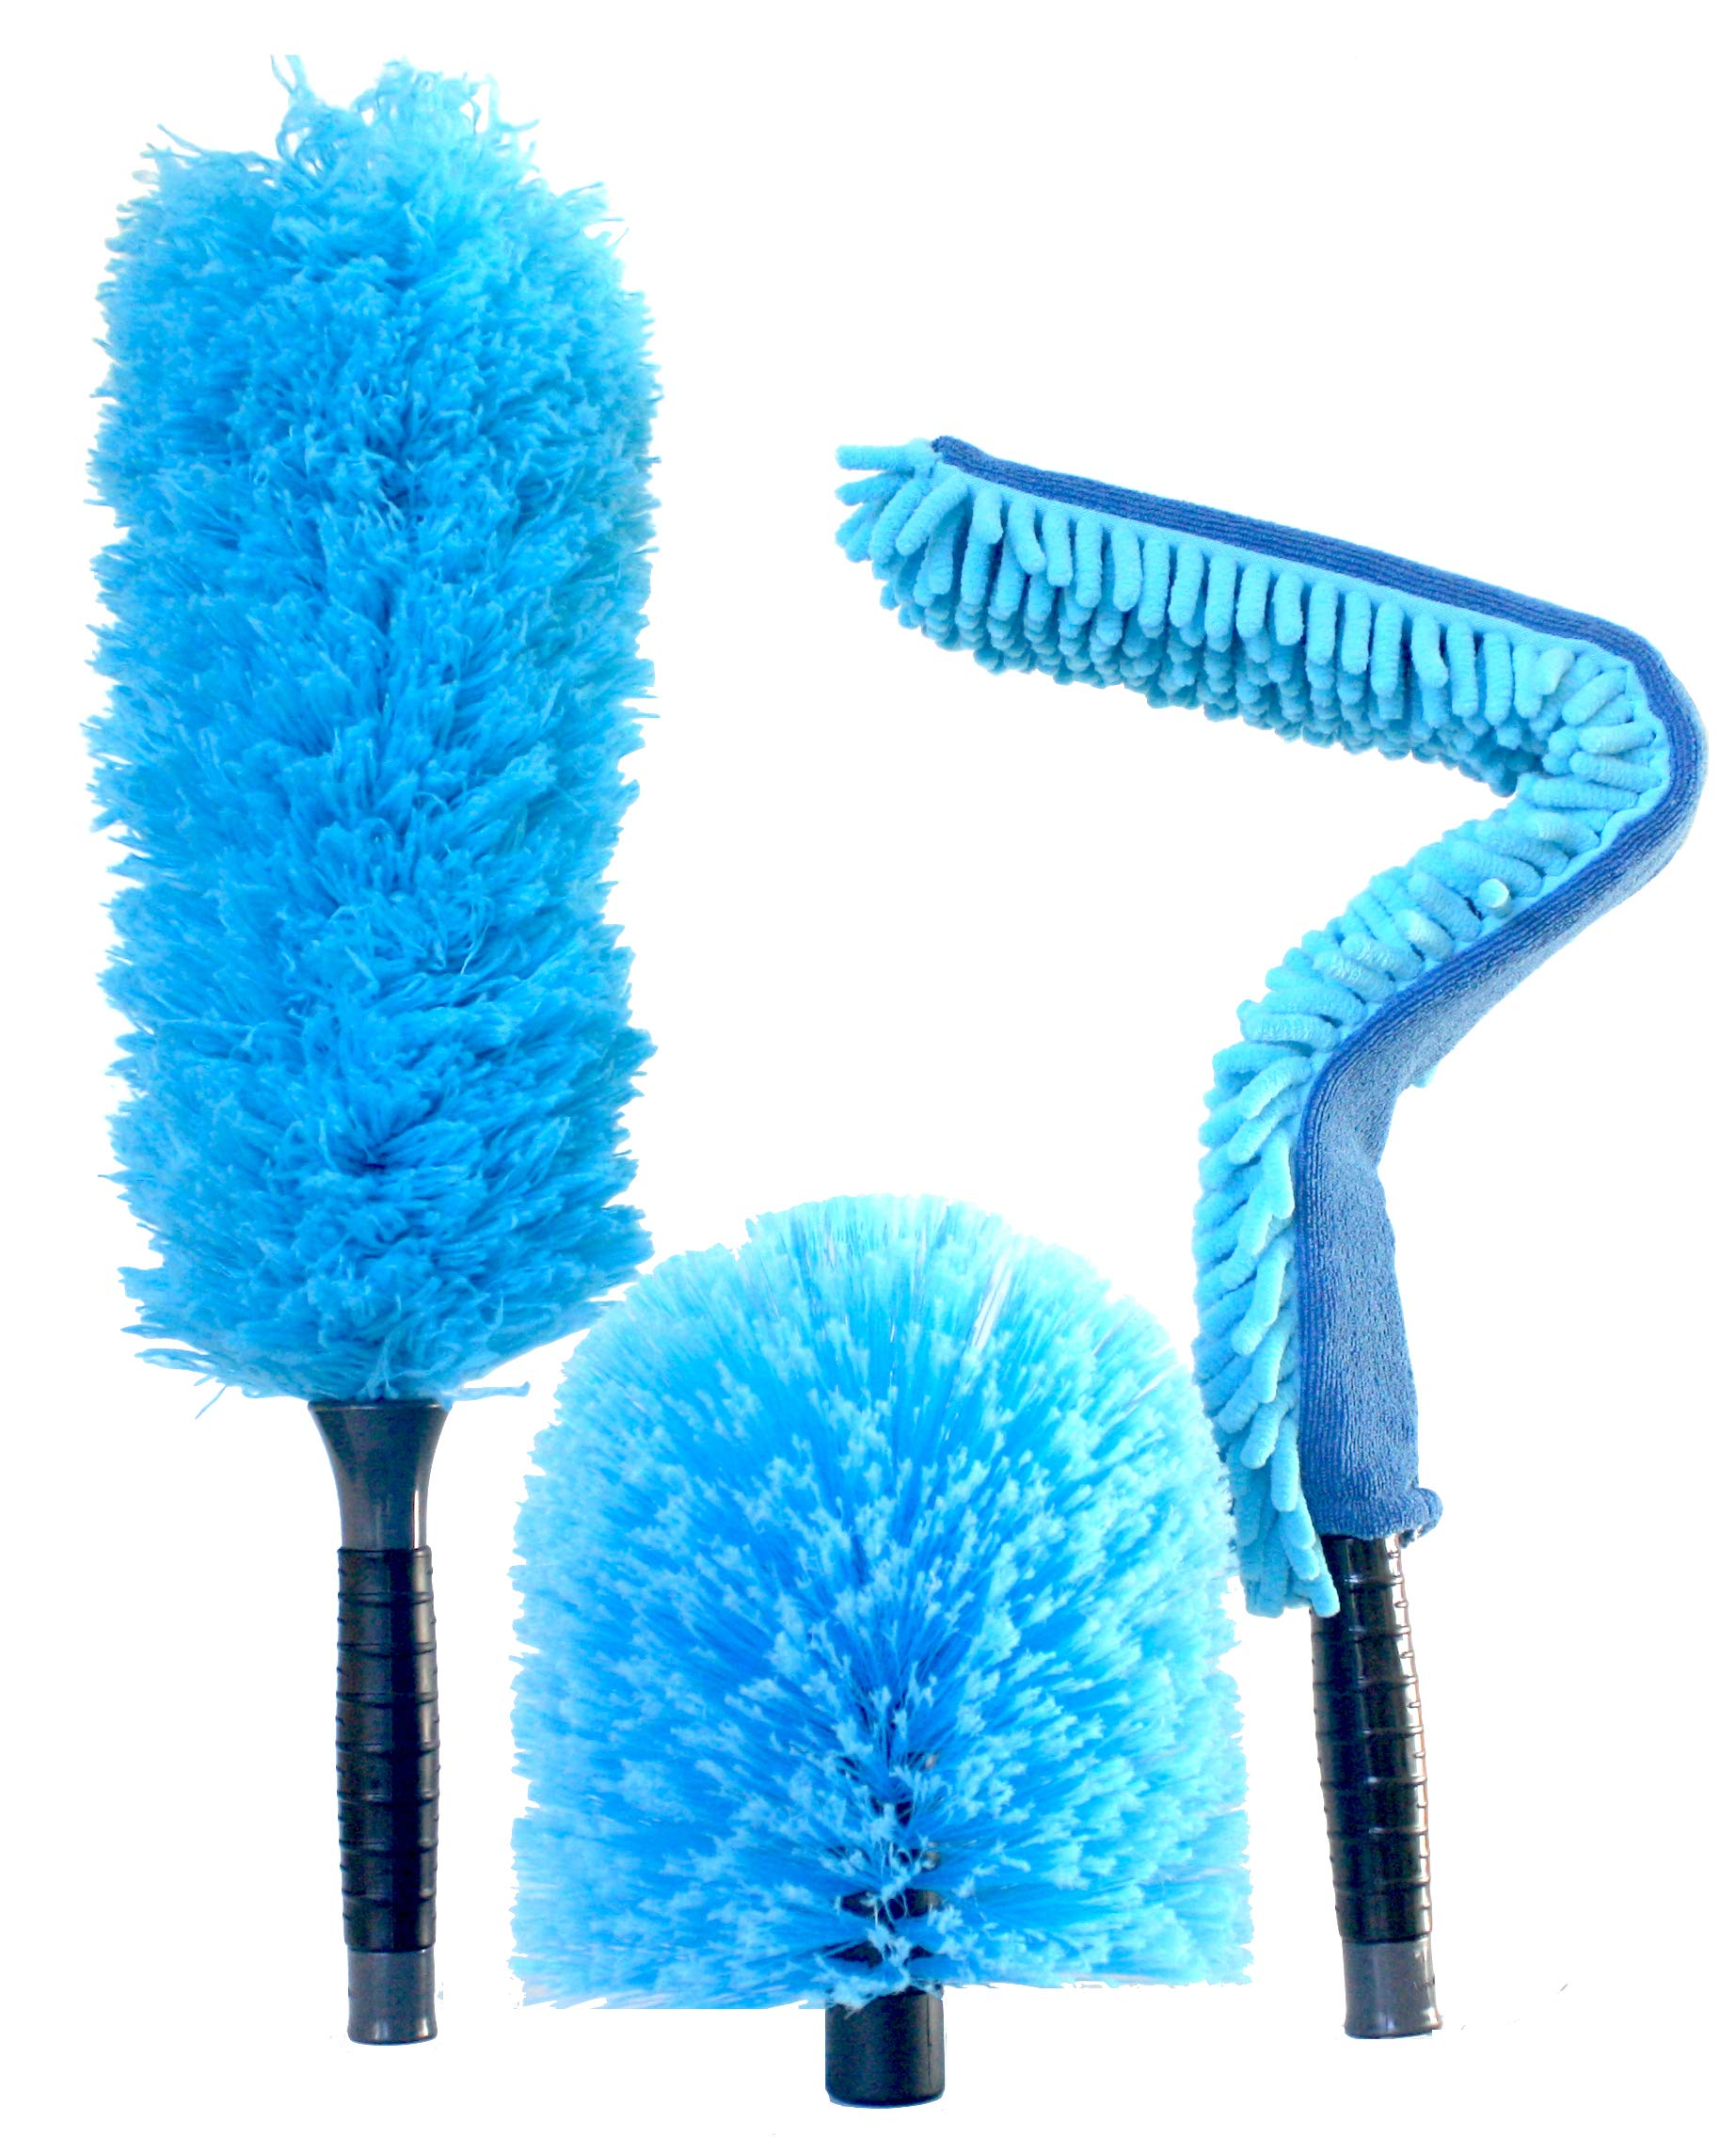 EVERSPROUT Duster 3-Pack | Hand-Packaged Cobweb Duster, Microfiber Feather Duster, Flexible Ceiling Fan Duster | Twists onto Standard 3/4'' Acme Threaded Poles (no Pole) (Soft Bristles)